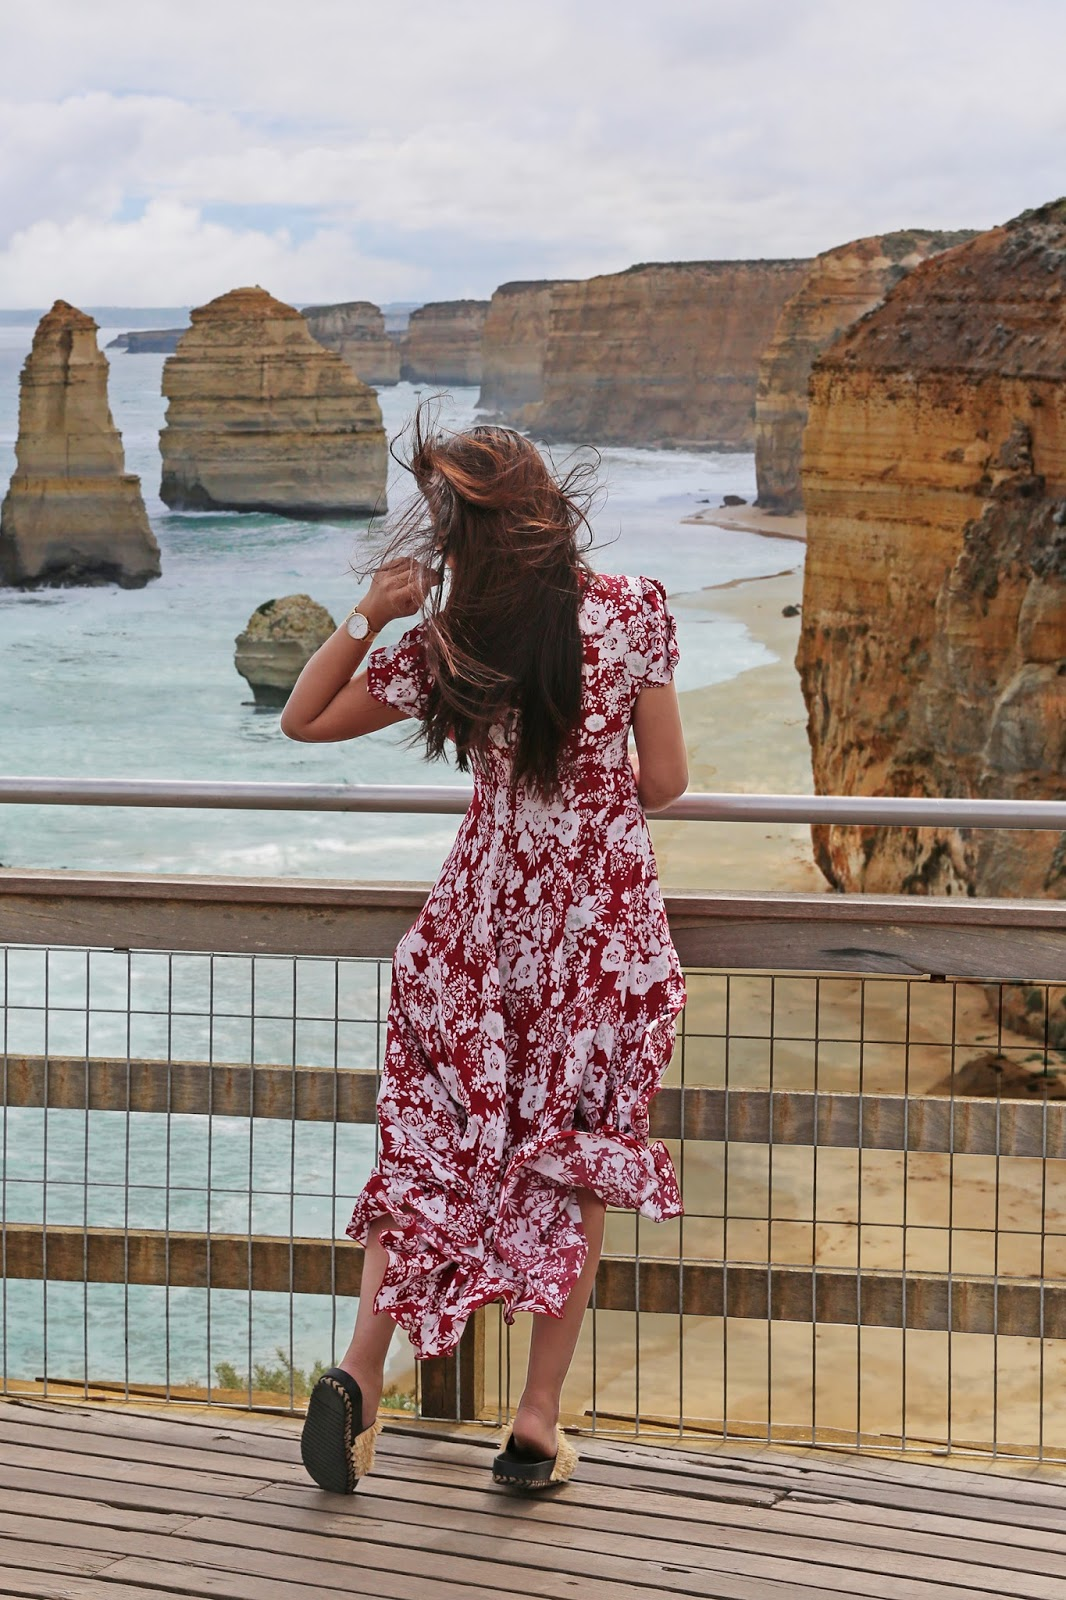 The Great Ocean Road, Australia: Beating the daytrippers at The Twelve Apostles